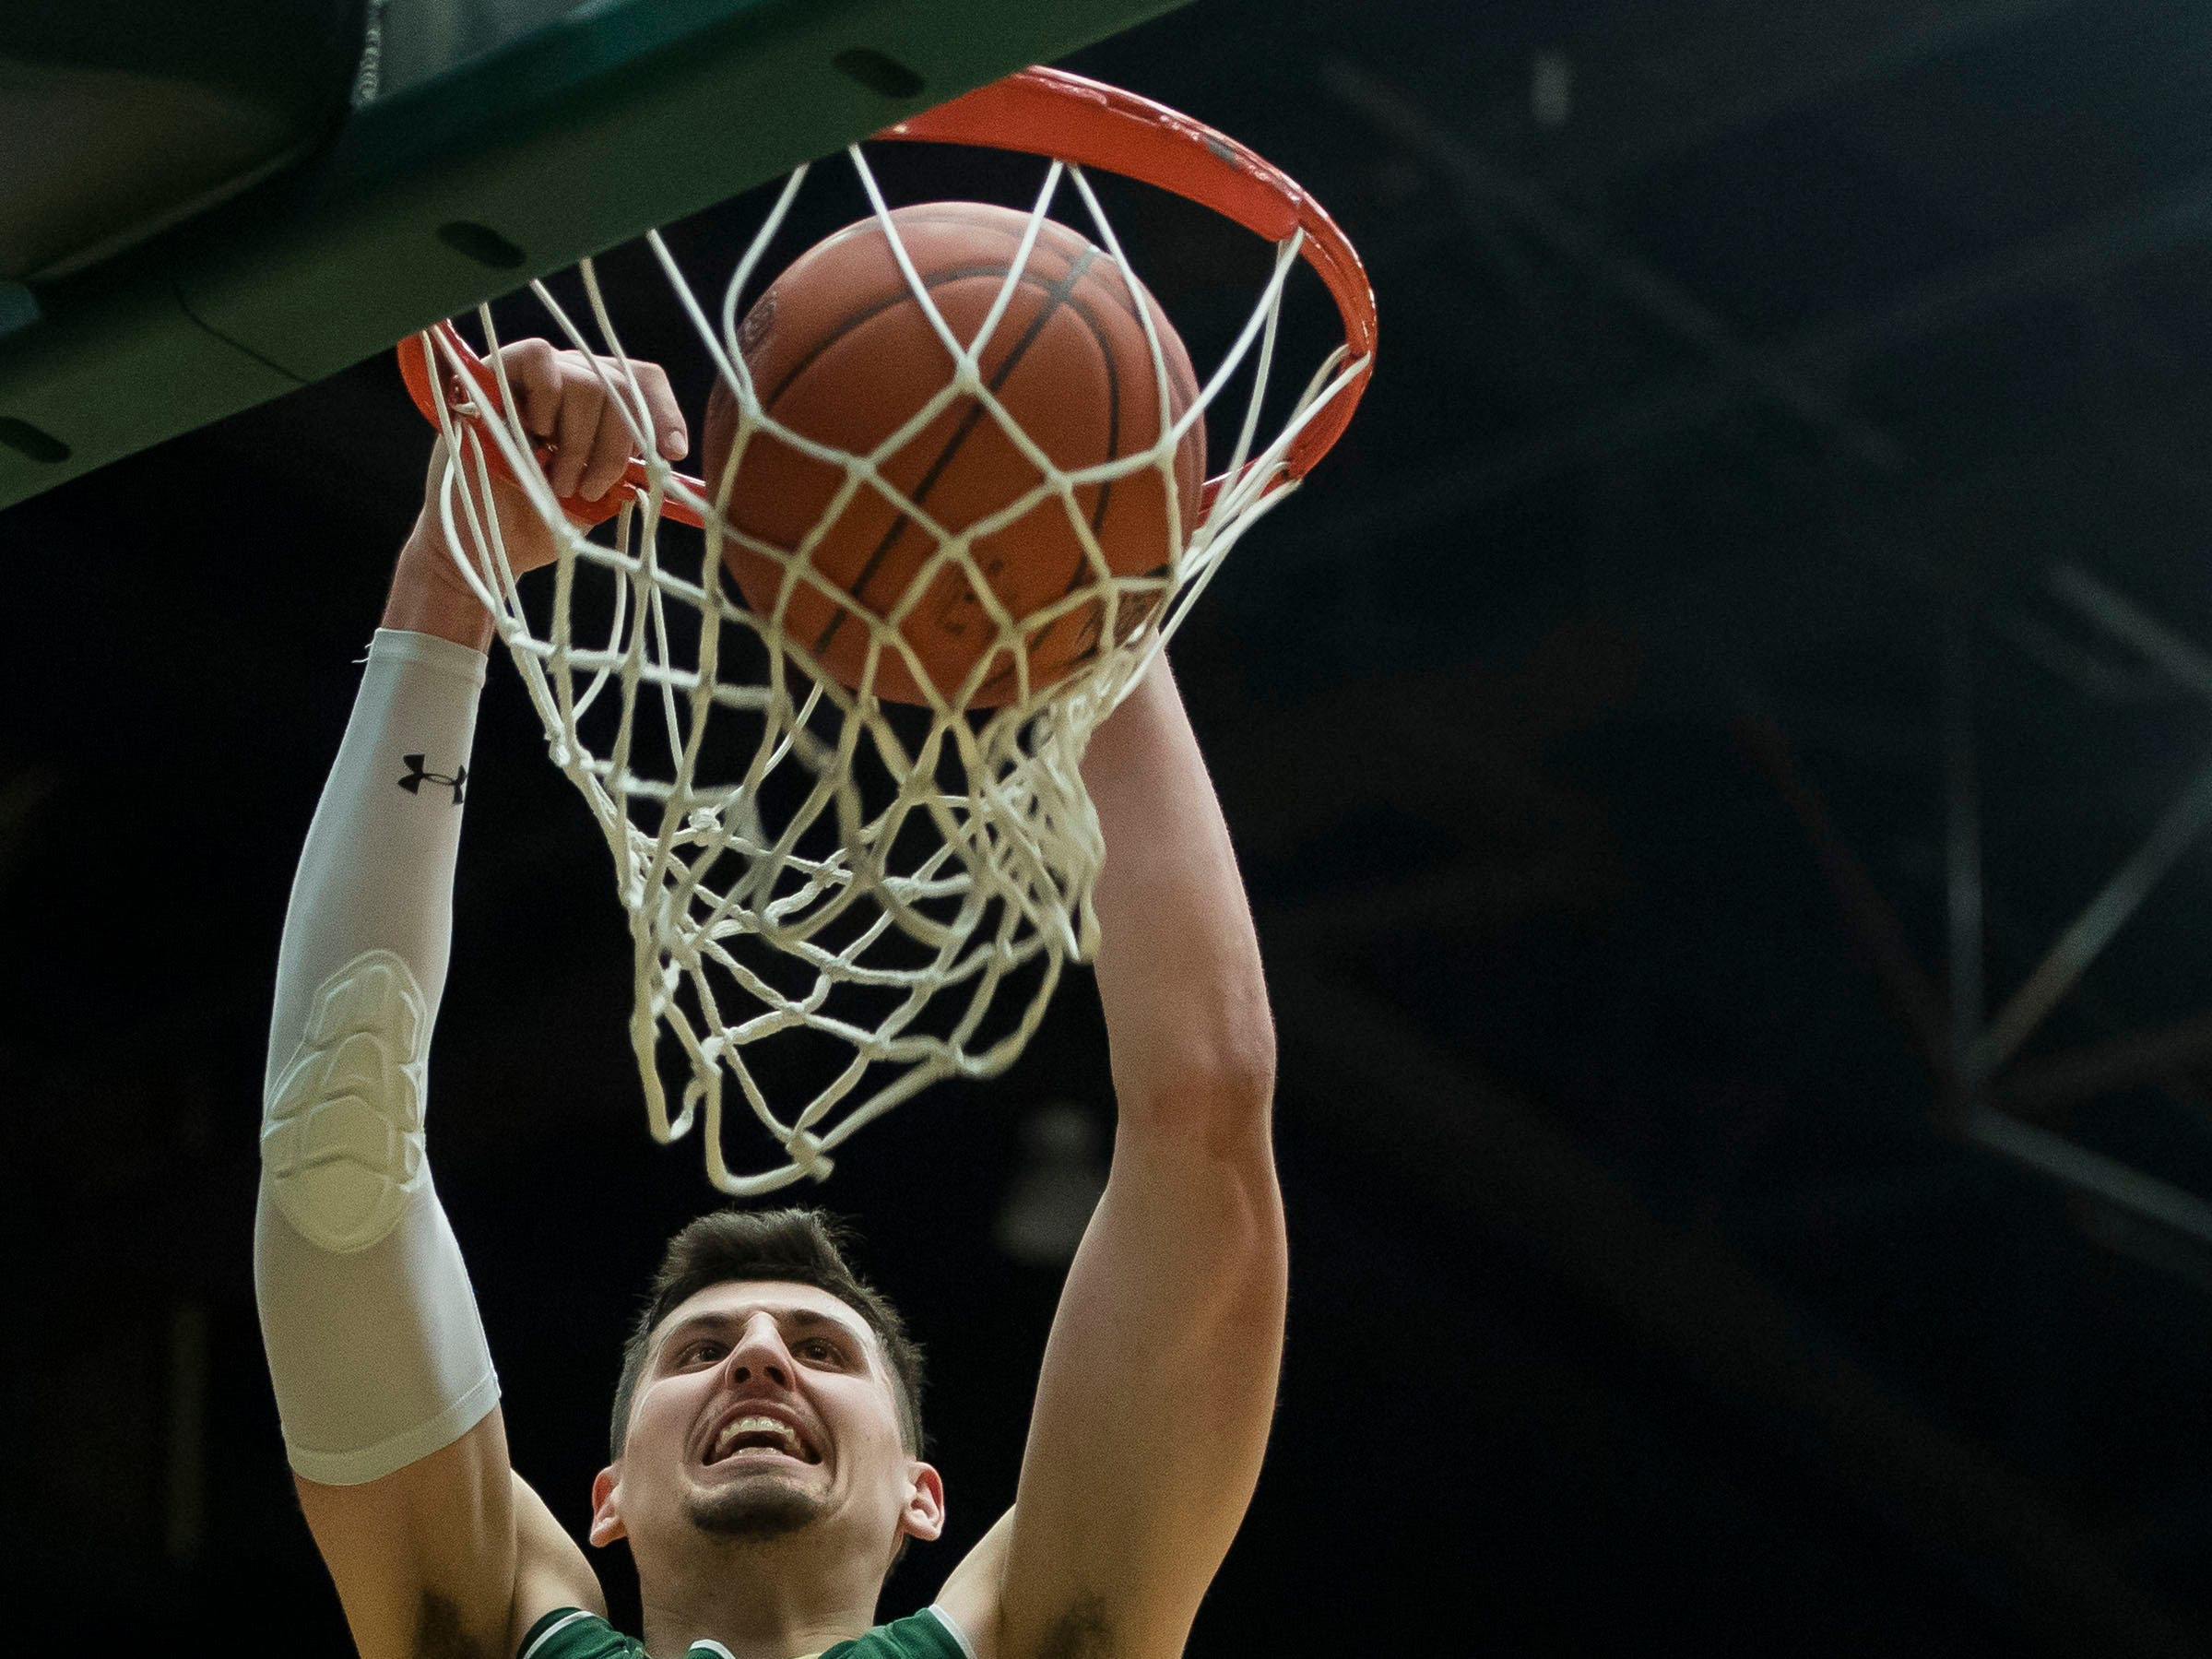 Colorado State University junior center Nico Carvacho (32) dunks during a game against University of Nevada Las Vegas on Saturday, March 9, 2019, at Moby Arena in Fort Collins, Colo.